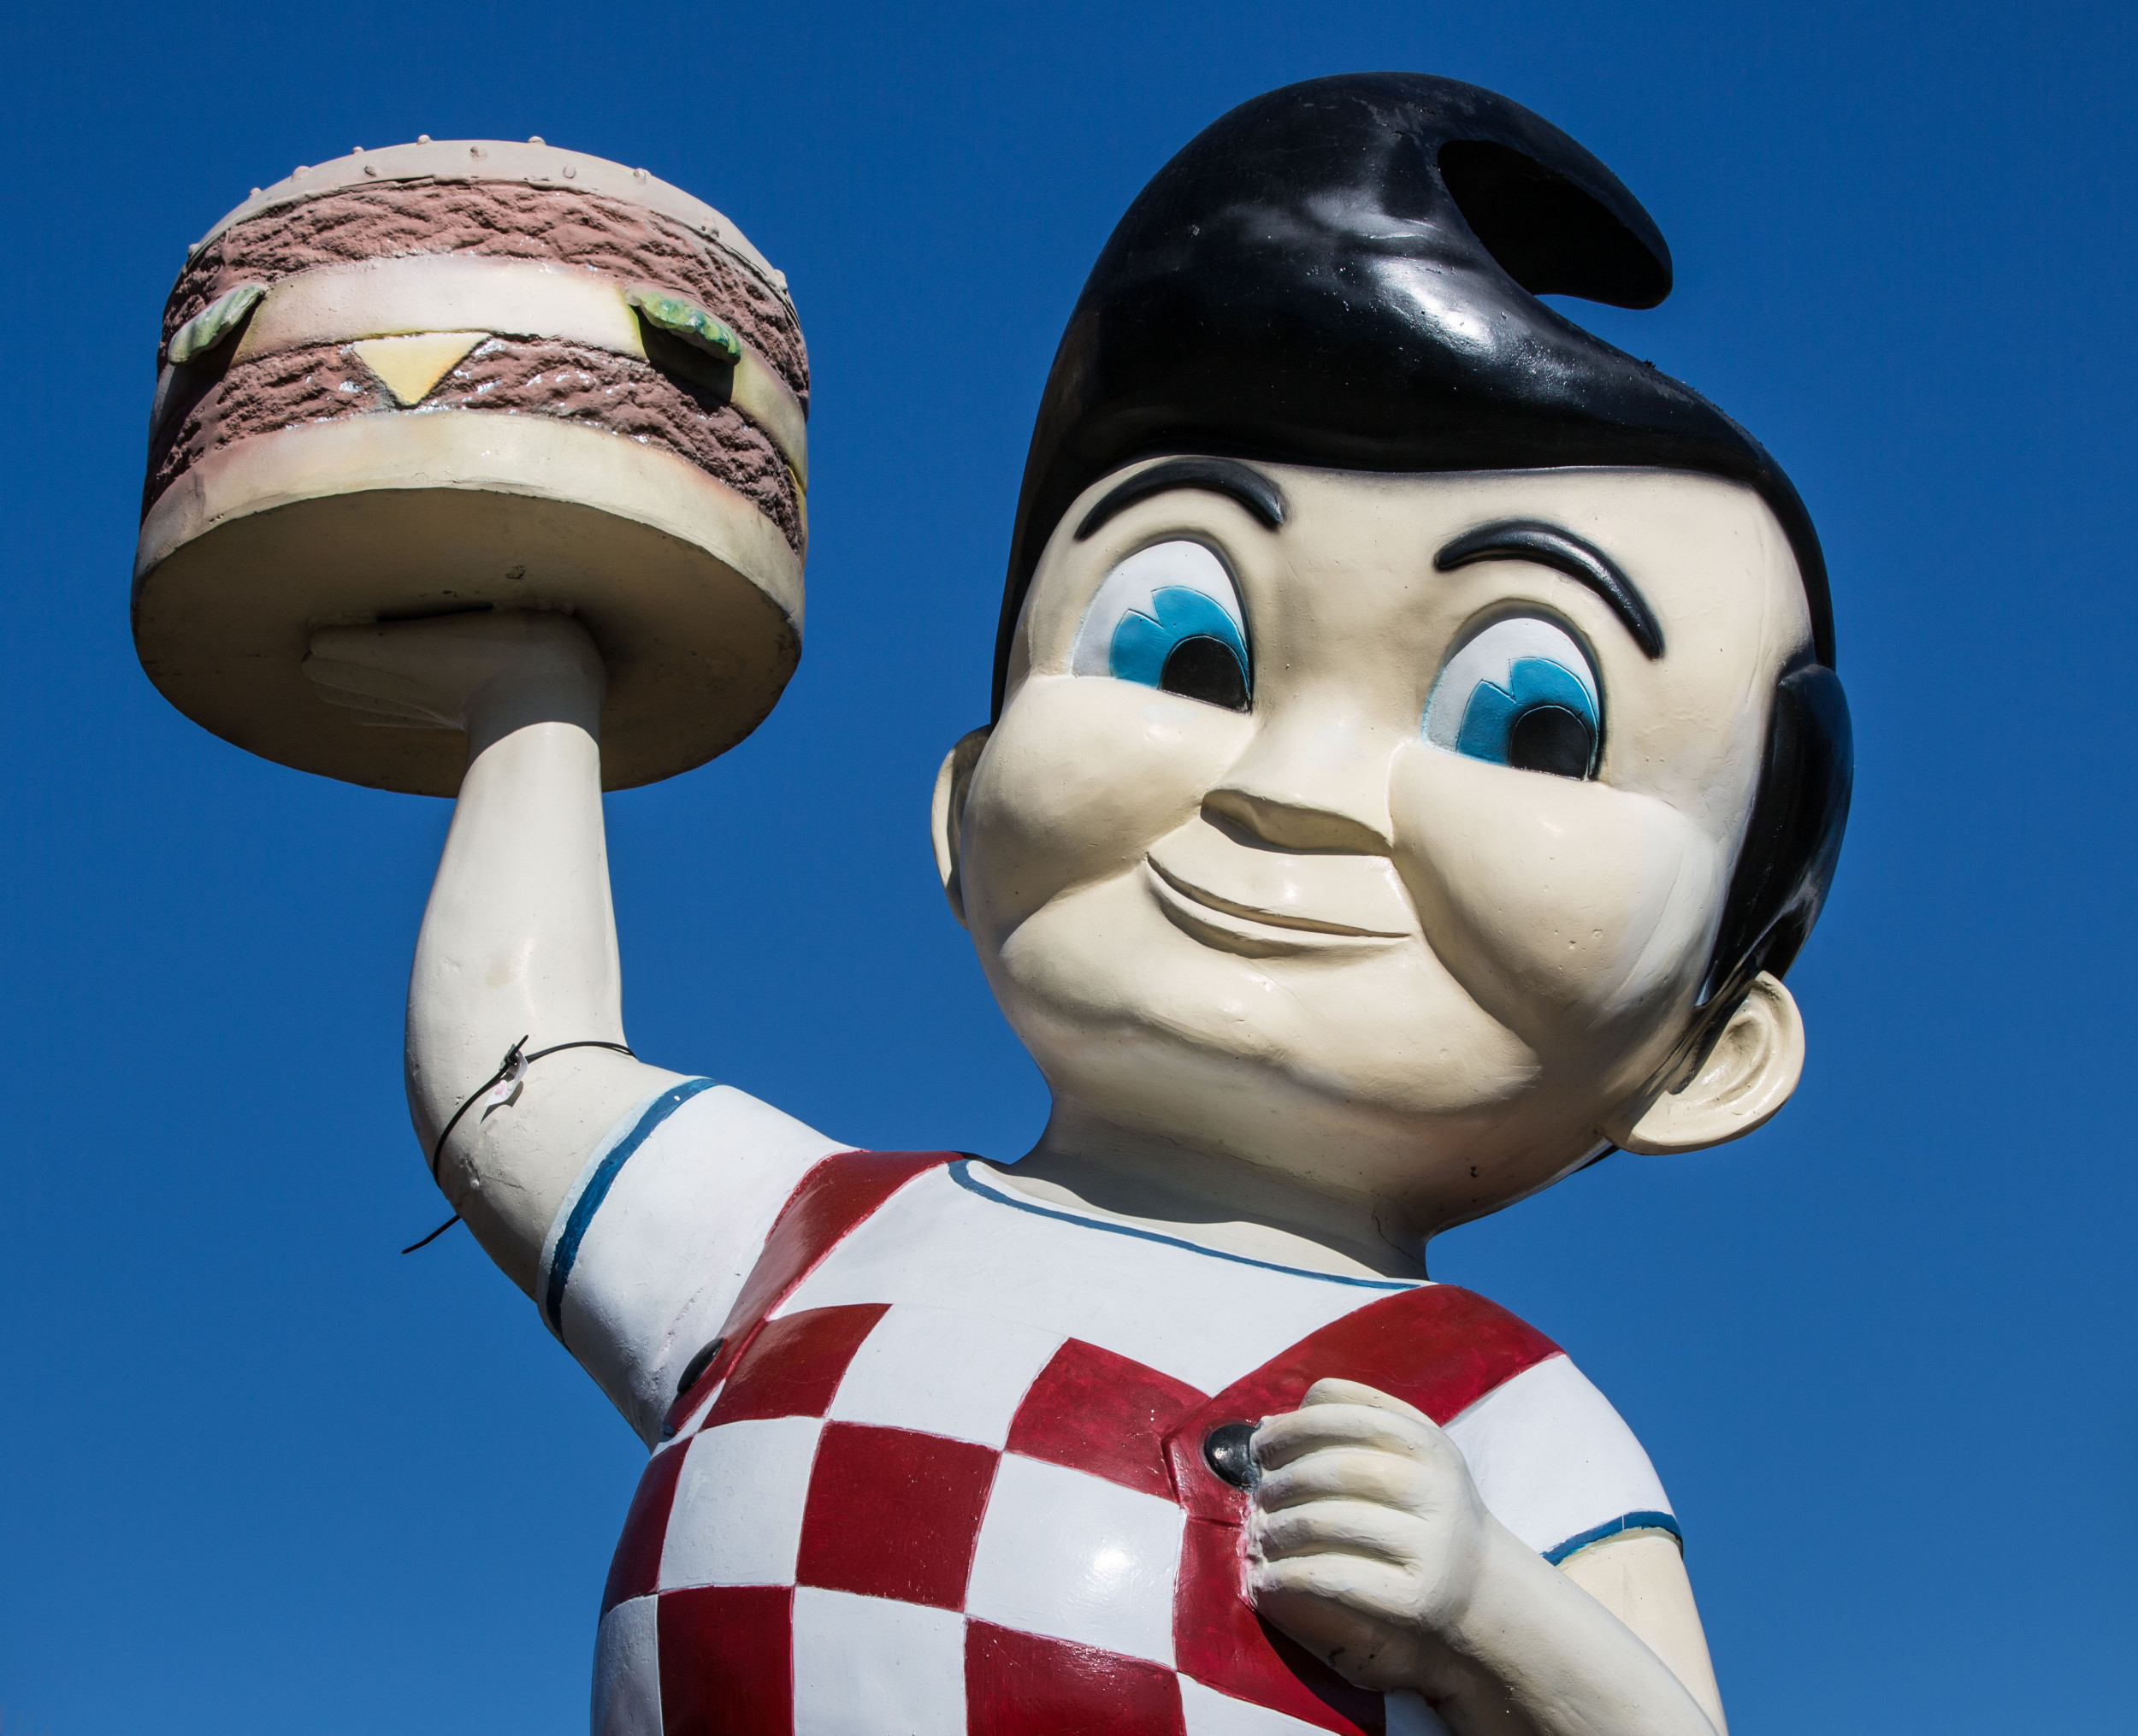 Big Boy restaurant chain threatens legal action against franchisee for violating Michigan's COVID orders: